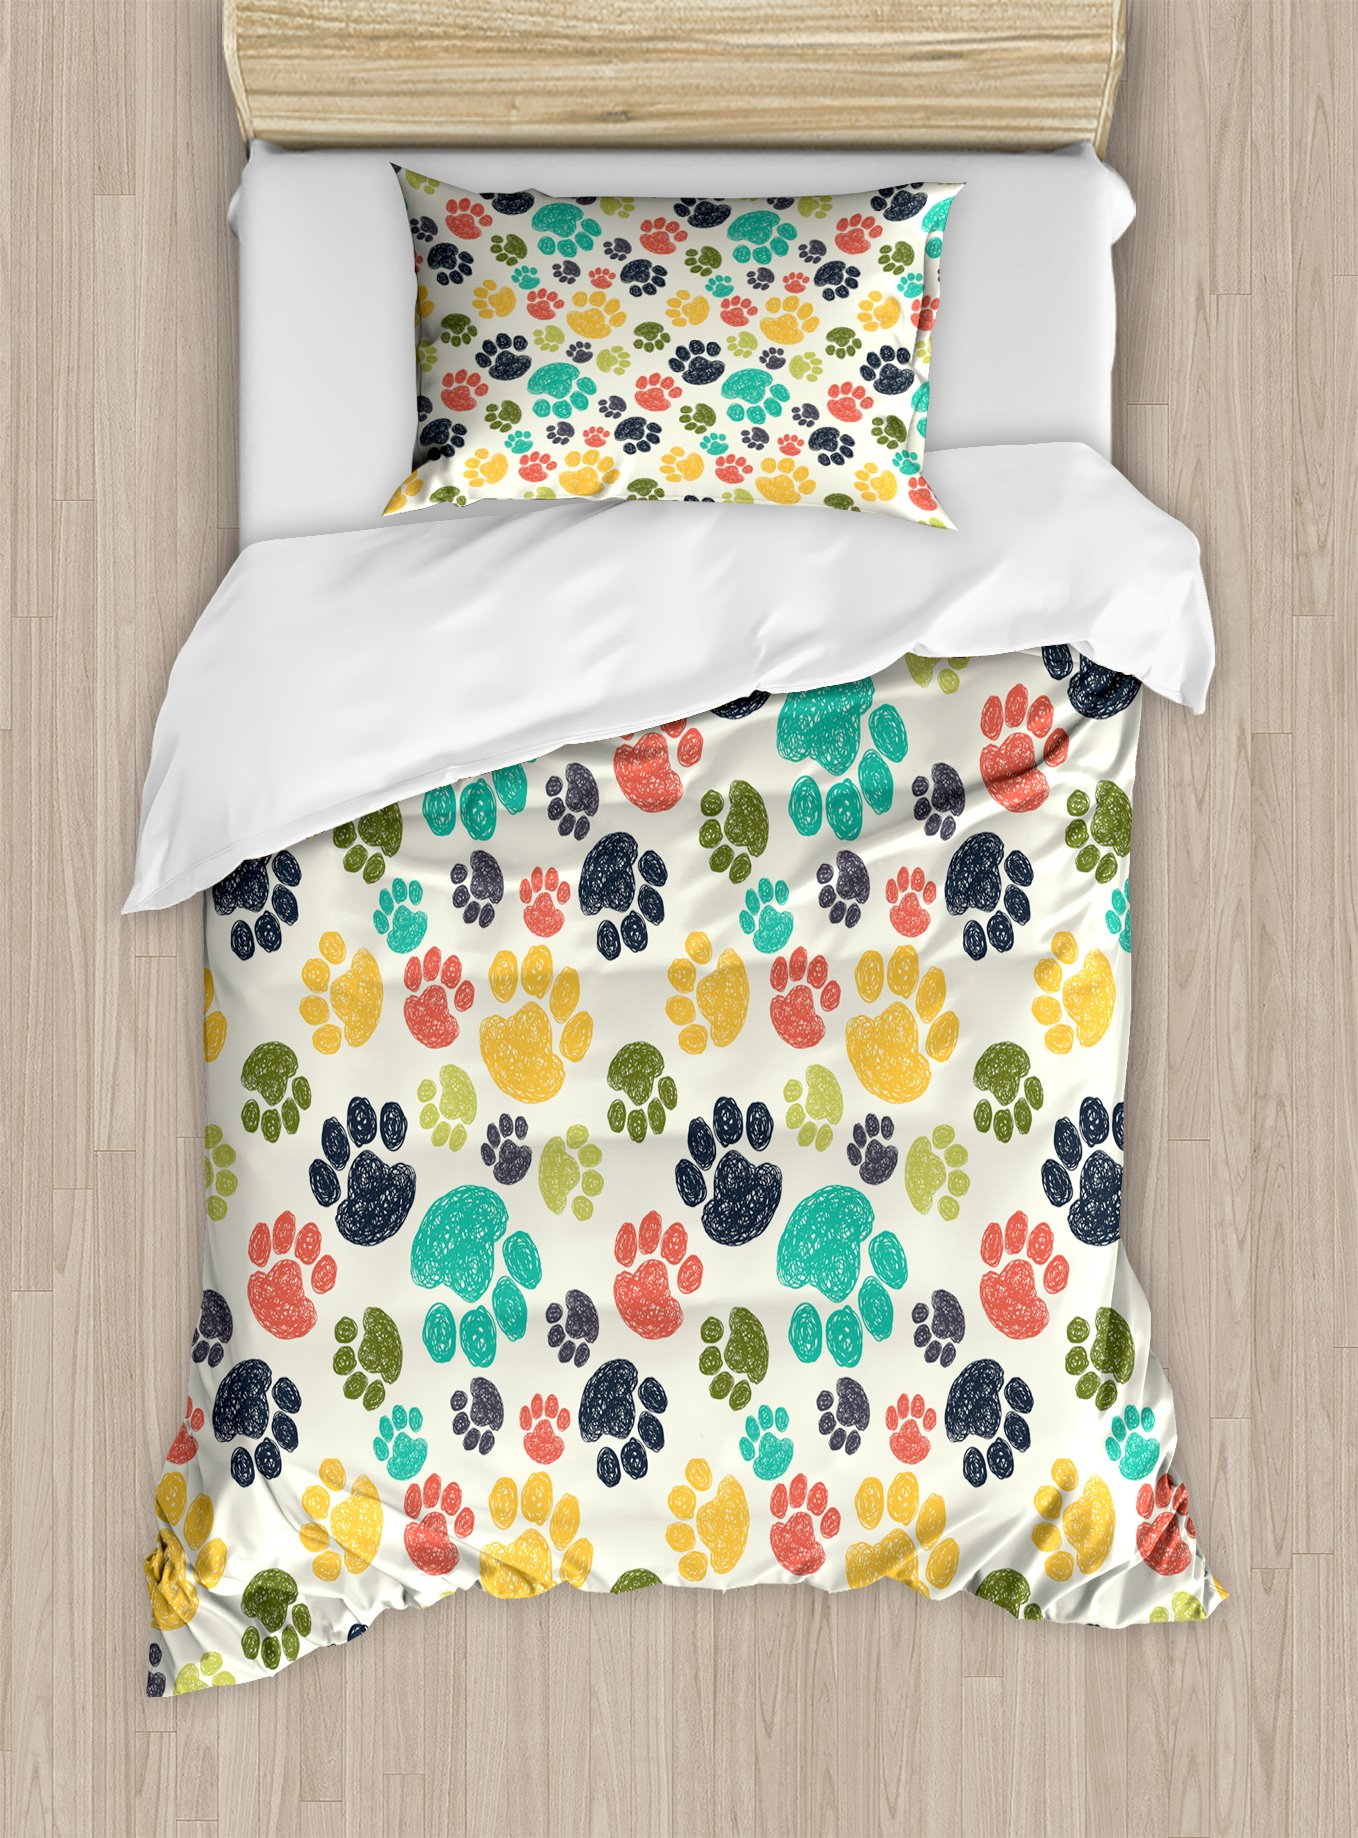 Ambesonne Dog Lover Duvet Cover Set Twin Size, Cute Hand Drawn Paw Print Doodles Circular Pattern Children Drawing Style Animal, Decorative 2 Piece Bedding Set with 1 Pillow Sham, Multicolor